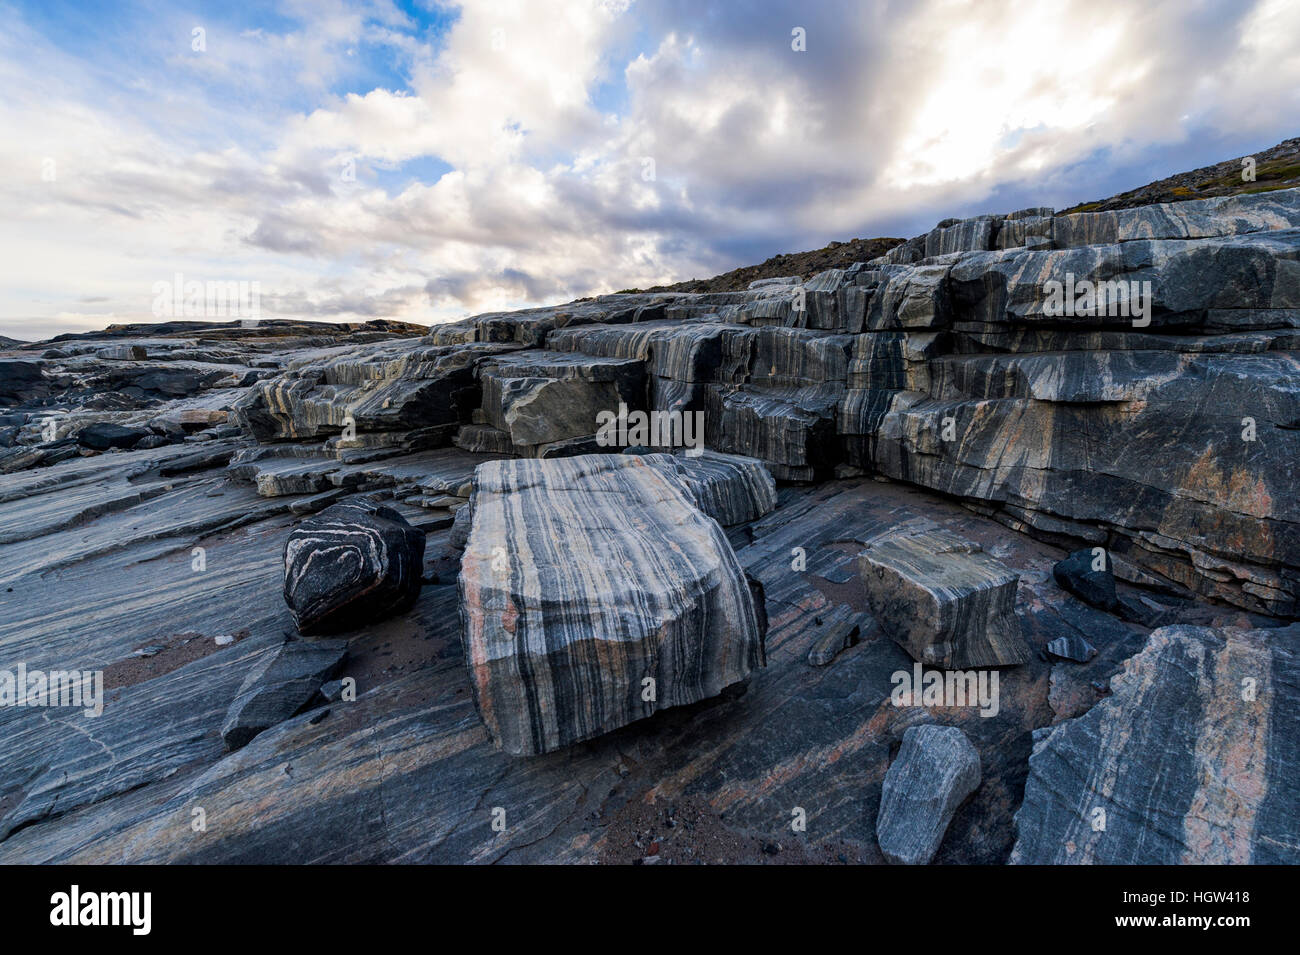 Striations carved into the bedrock by ice erosion as a